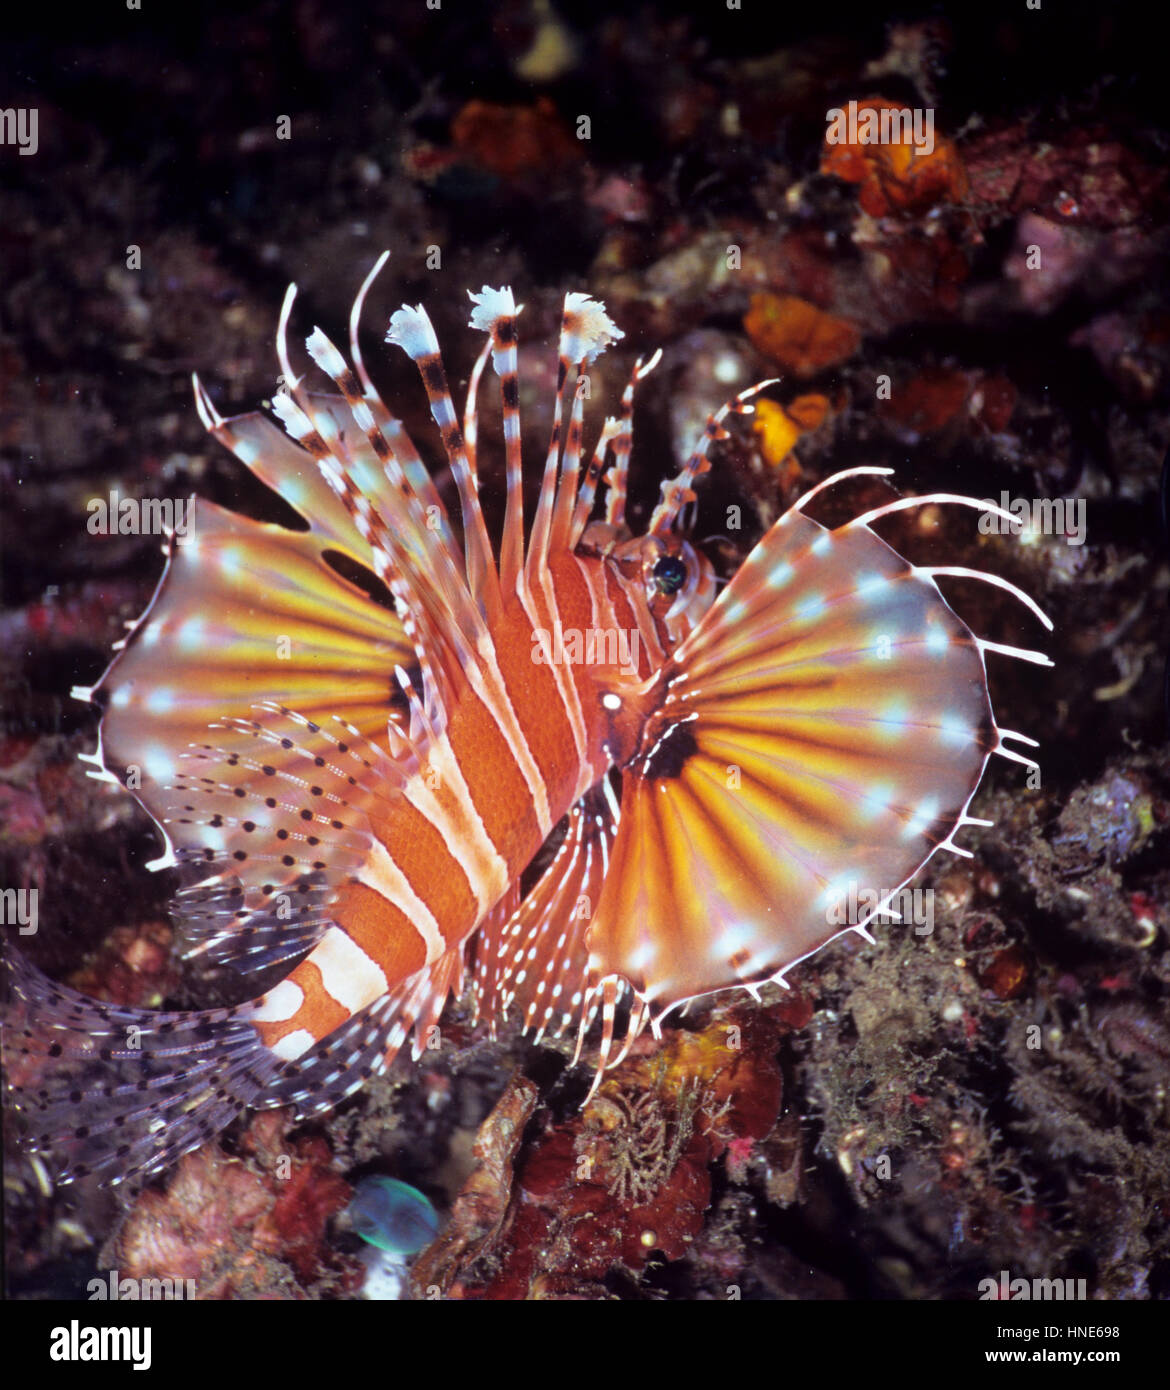 A zebra lionfish (Dendrochirus zebra) with fully extended fan-like pectoral fins, attached to which are numerous - Stock Image